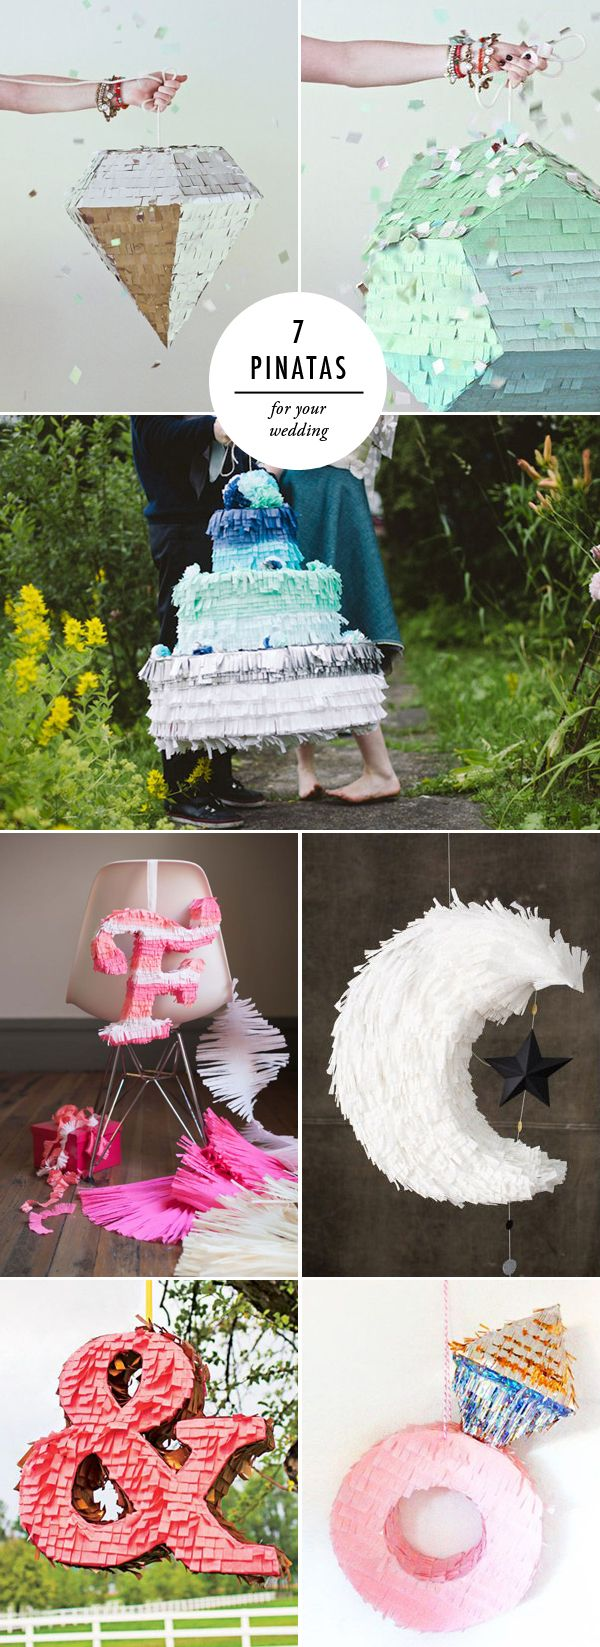 7 pinatas for your wedding